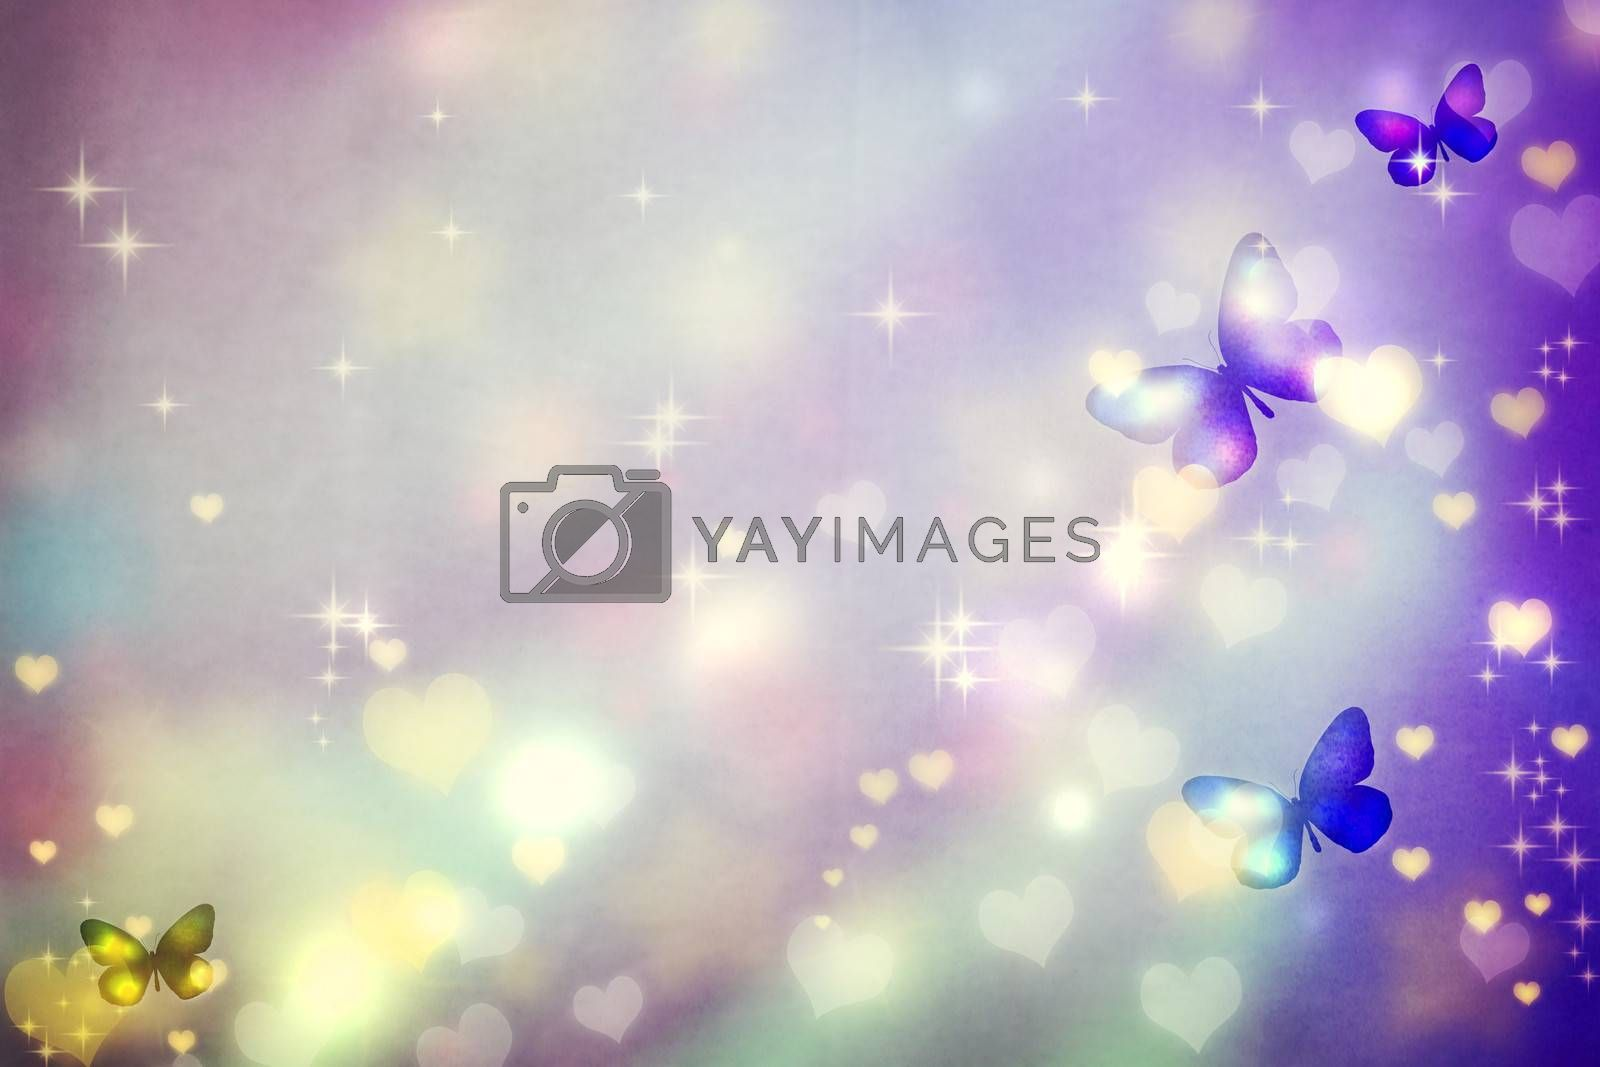 Royalty free image of Butterfly silhouettes on purple background by melpomene